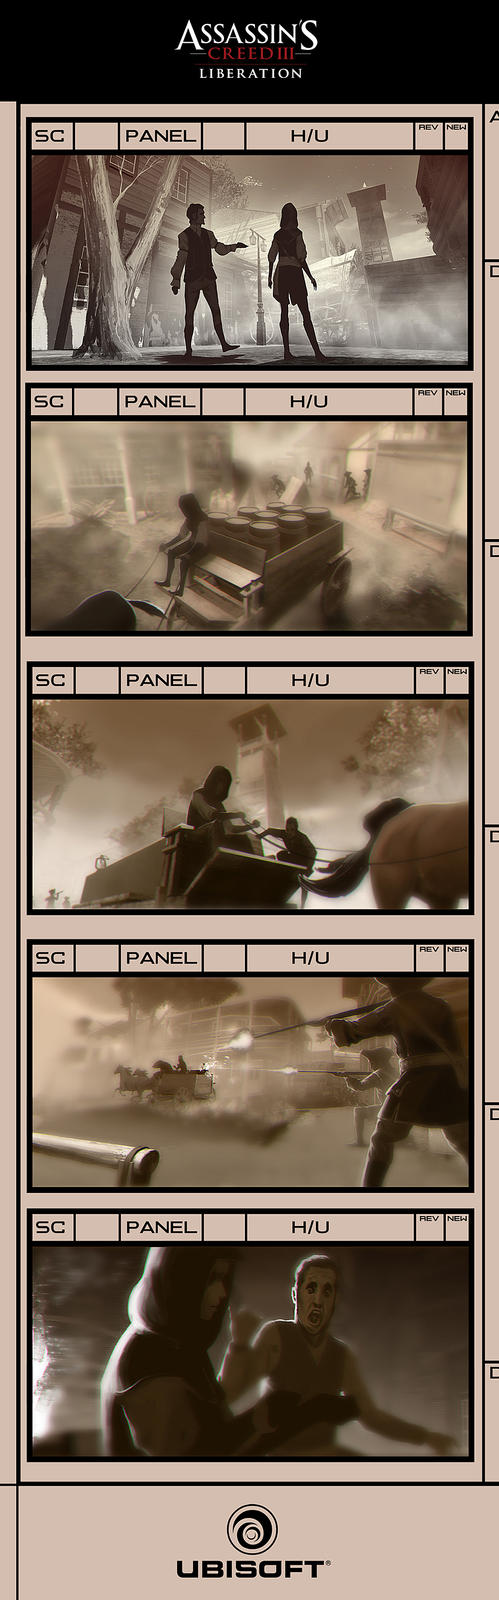 Assassin's creed III: Liberation boards_00 by drazebot